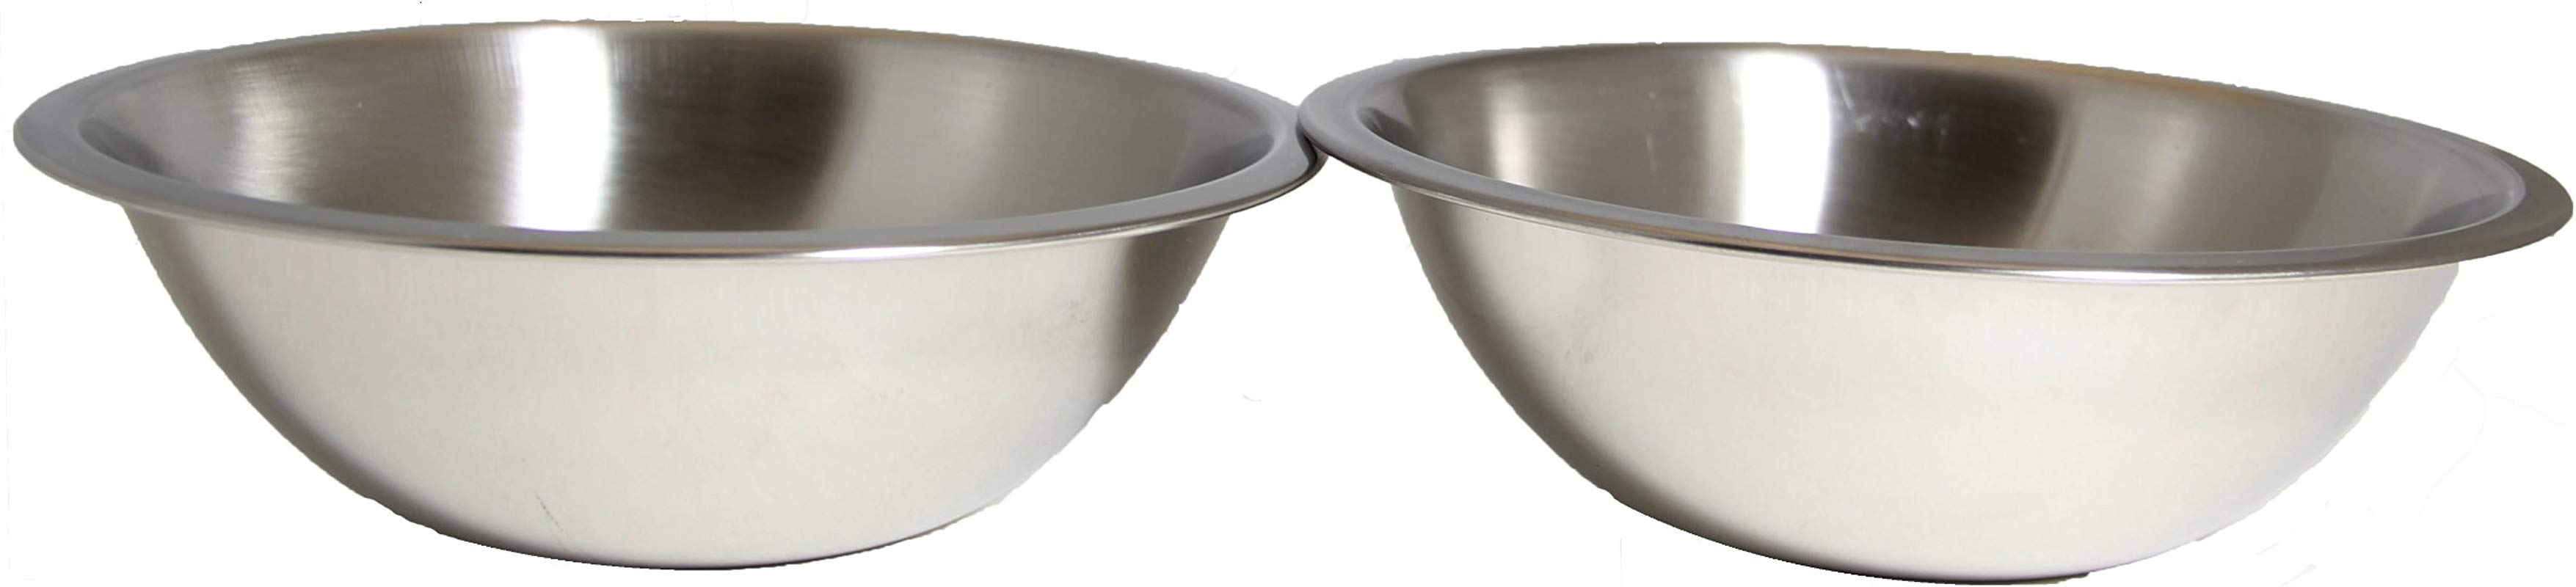 SET OF 2 10 Inch Wide Stainless Steel Flat Rim Flat Base Mixing Bowl